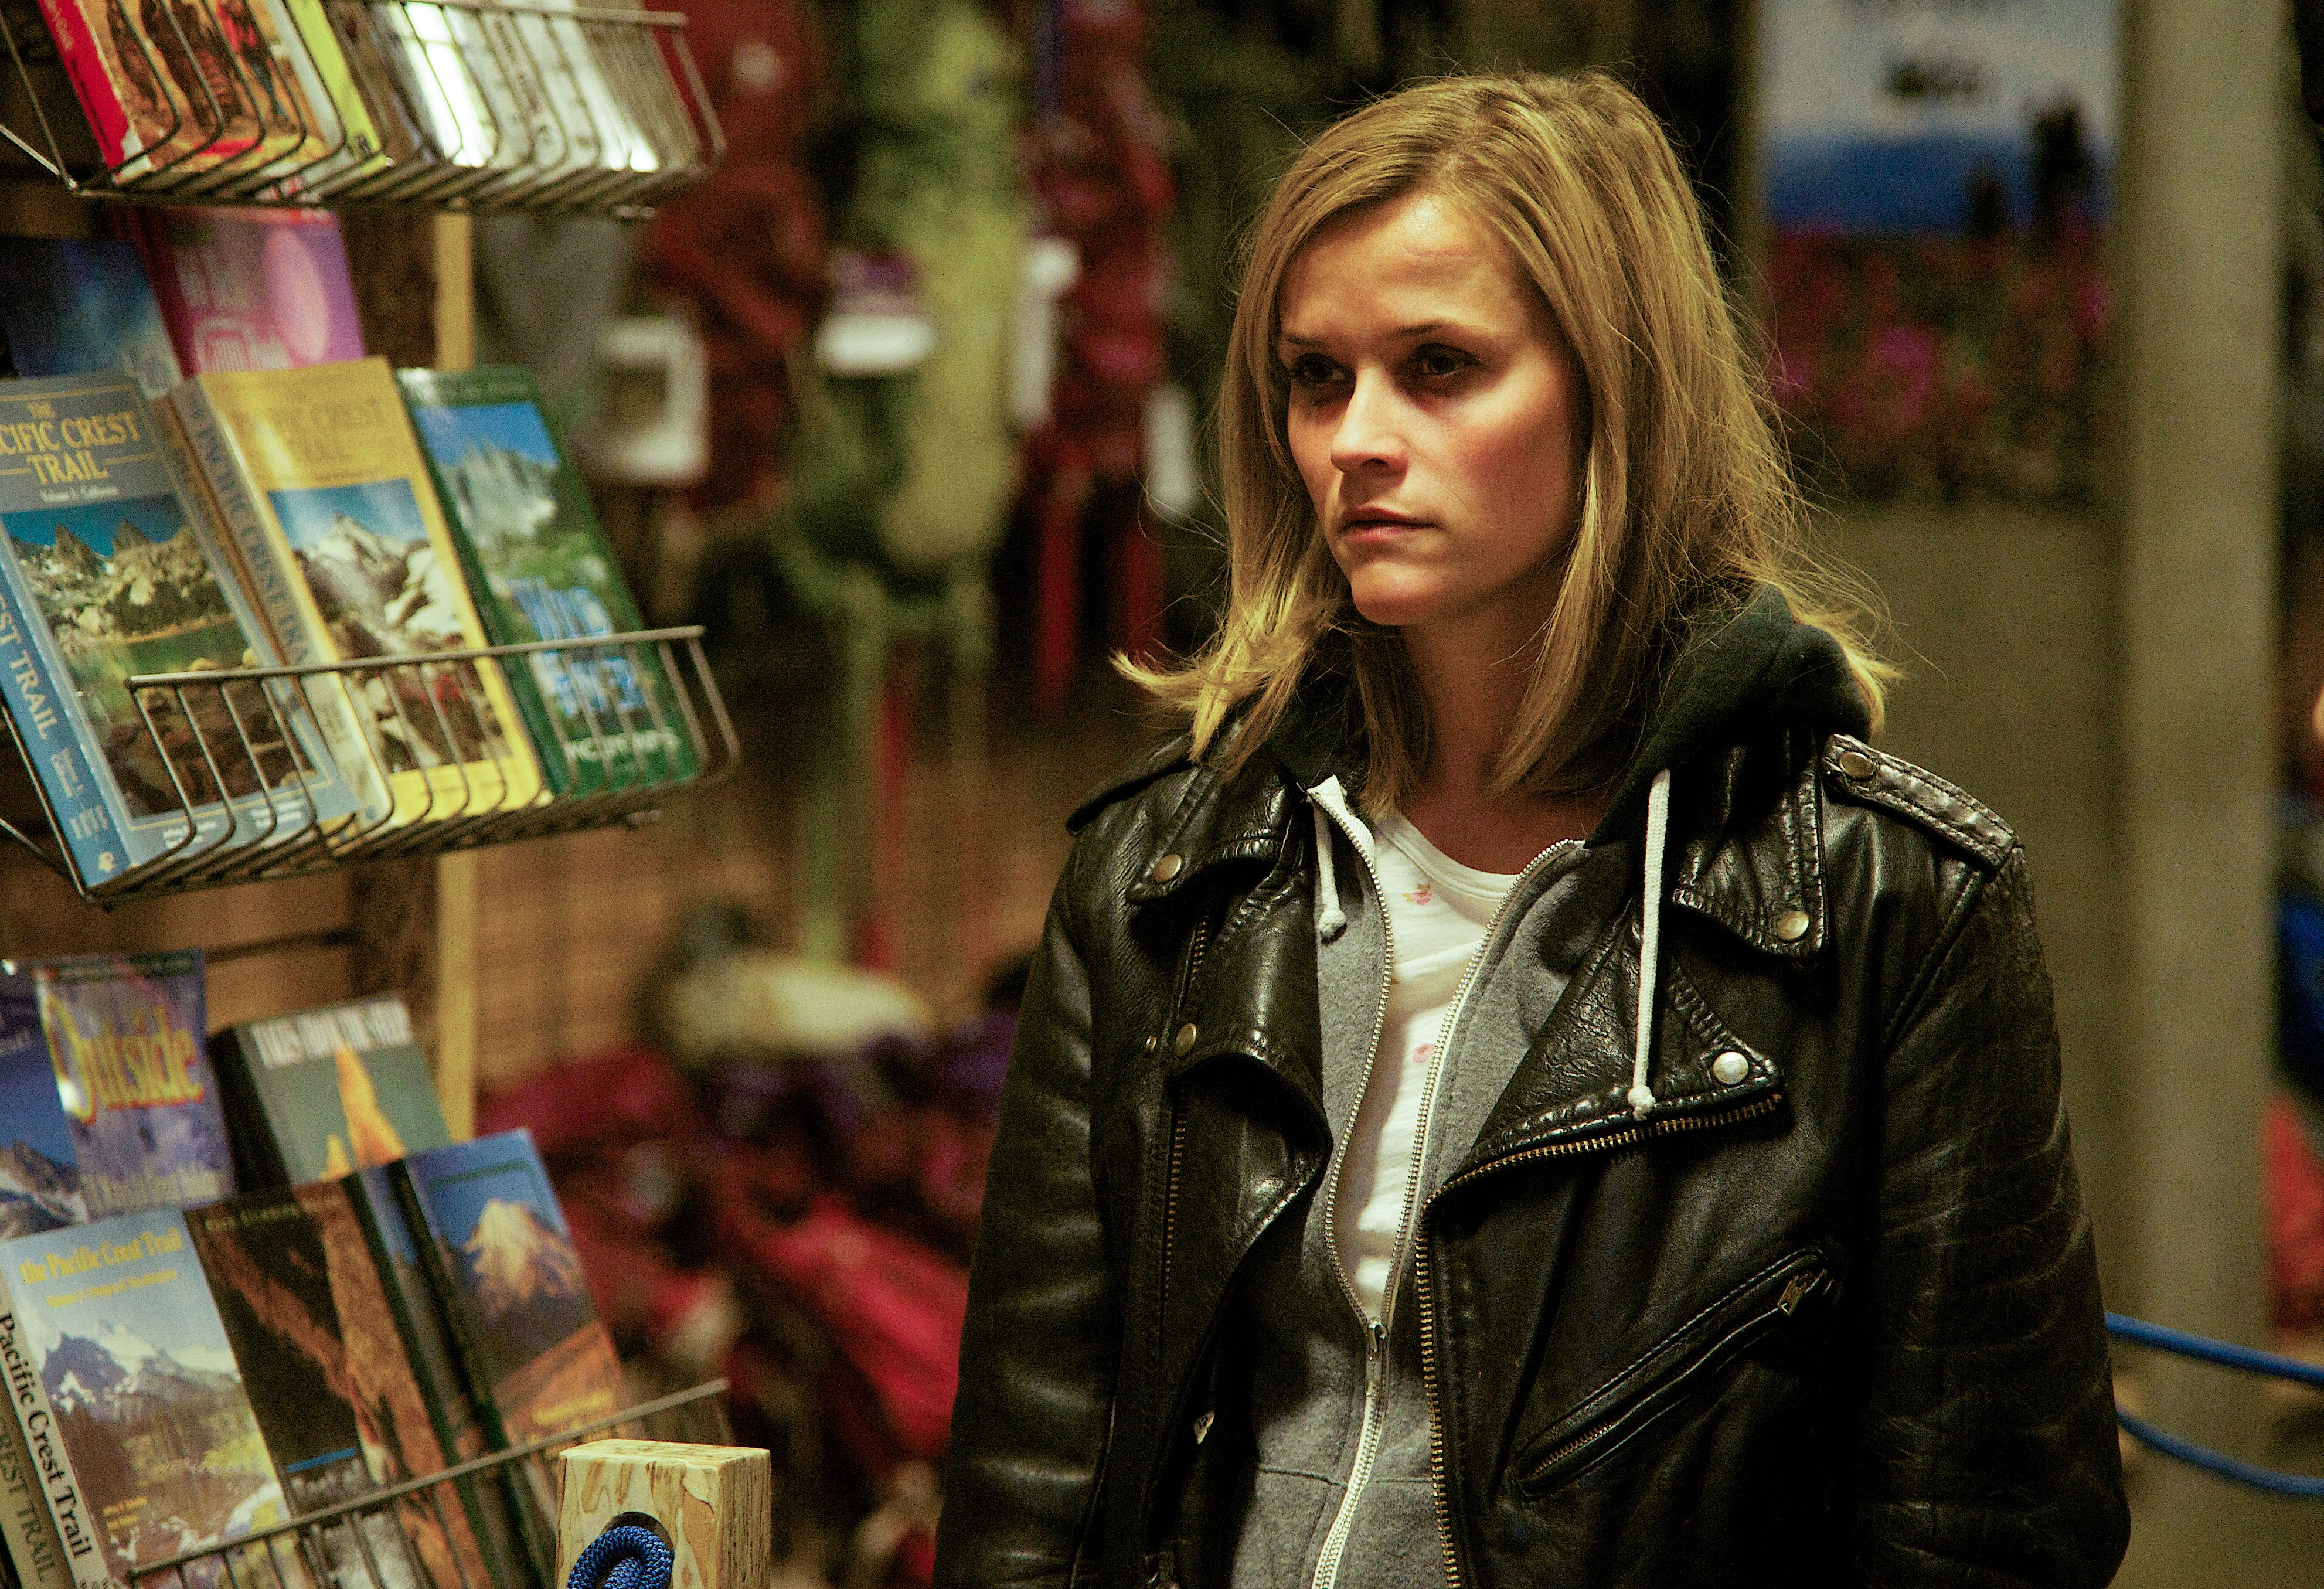 Reese Witherspoon still in the city - Wild